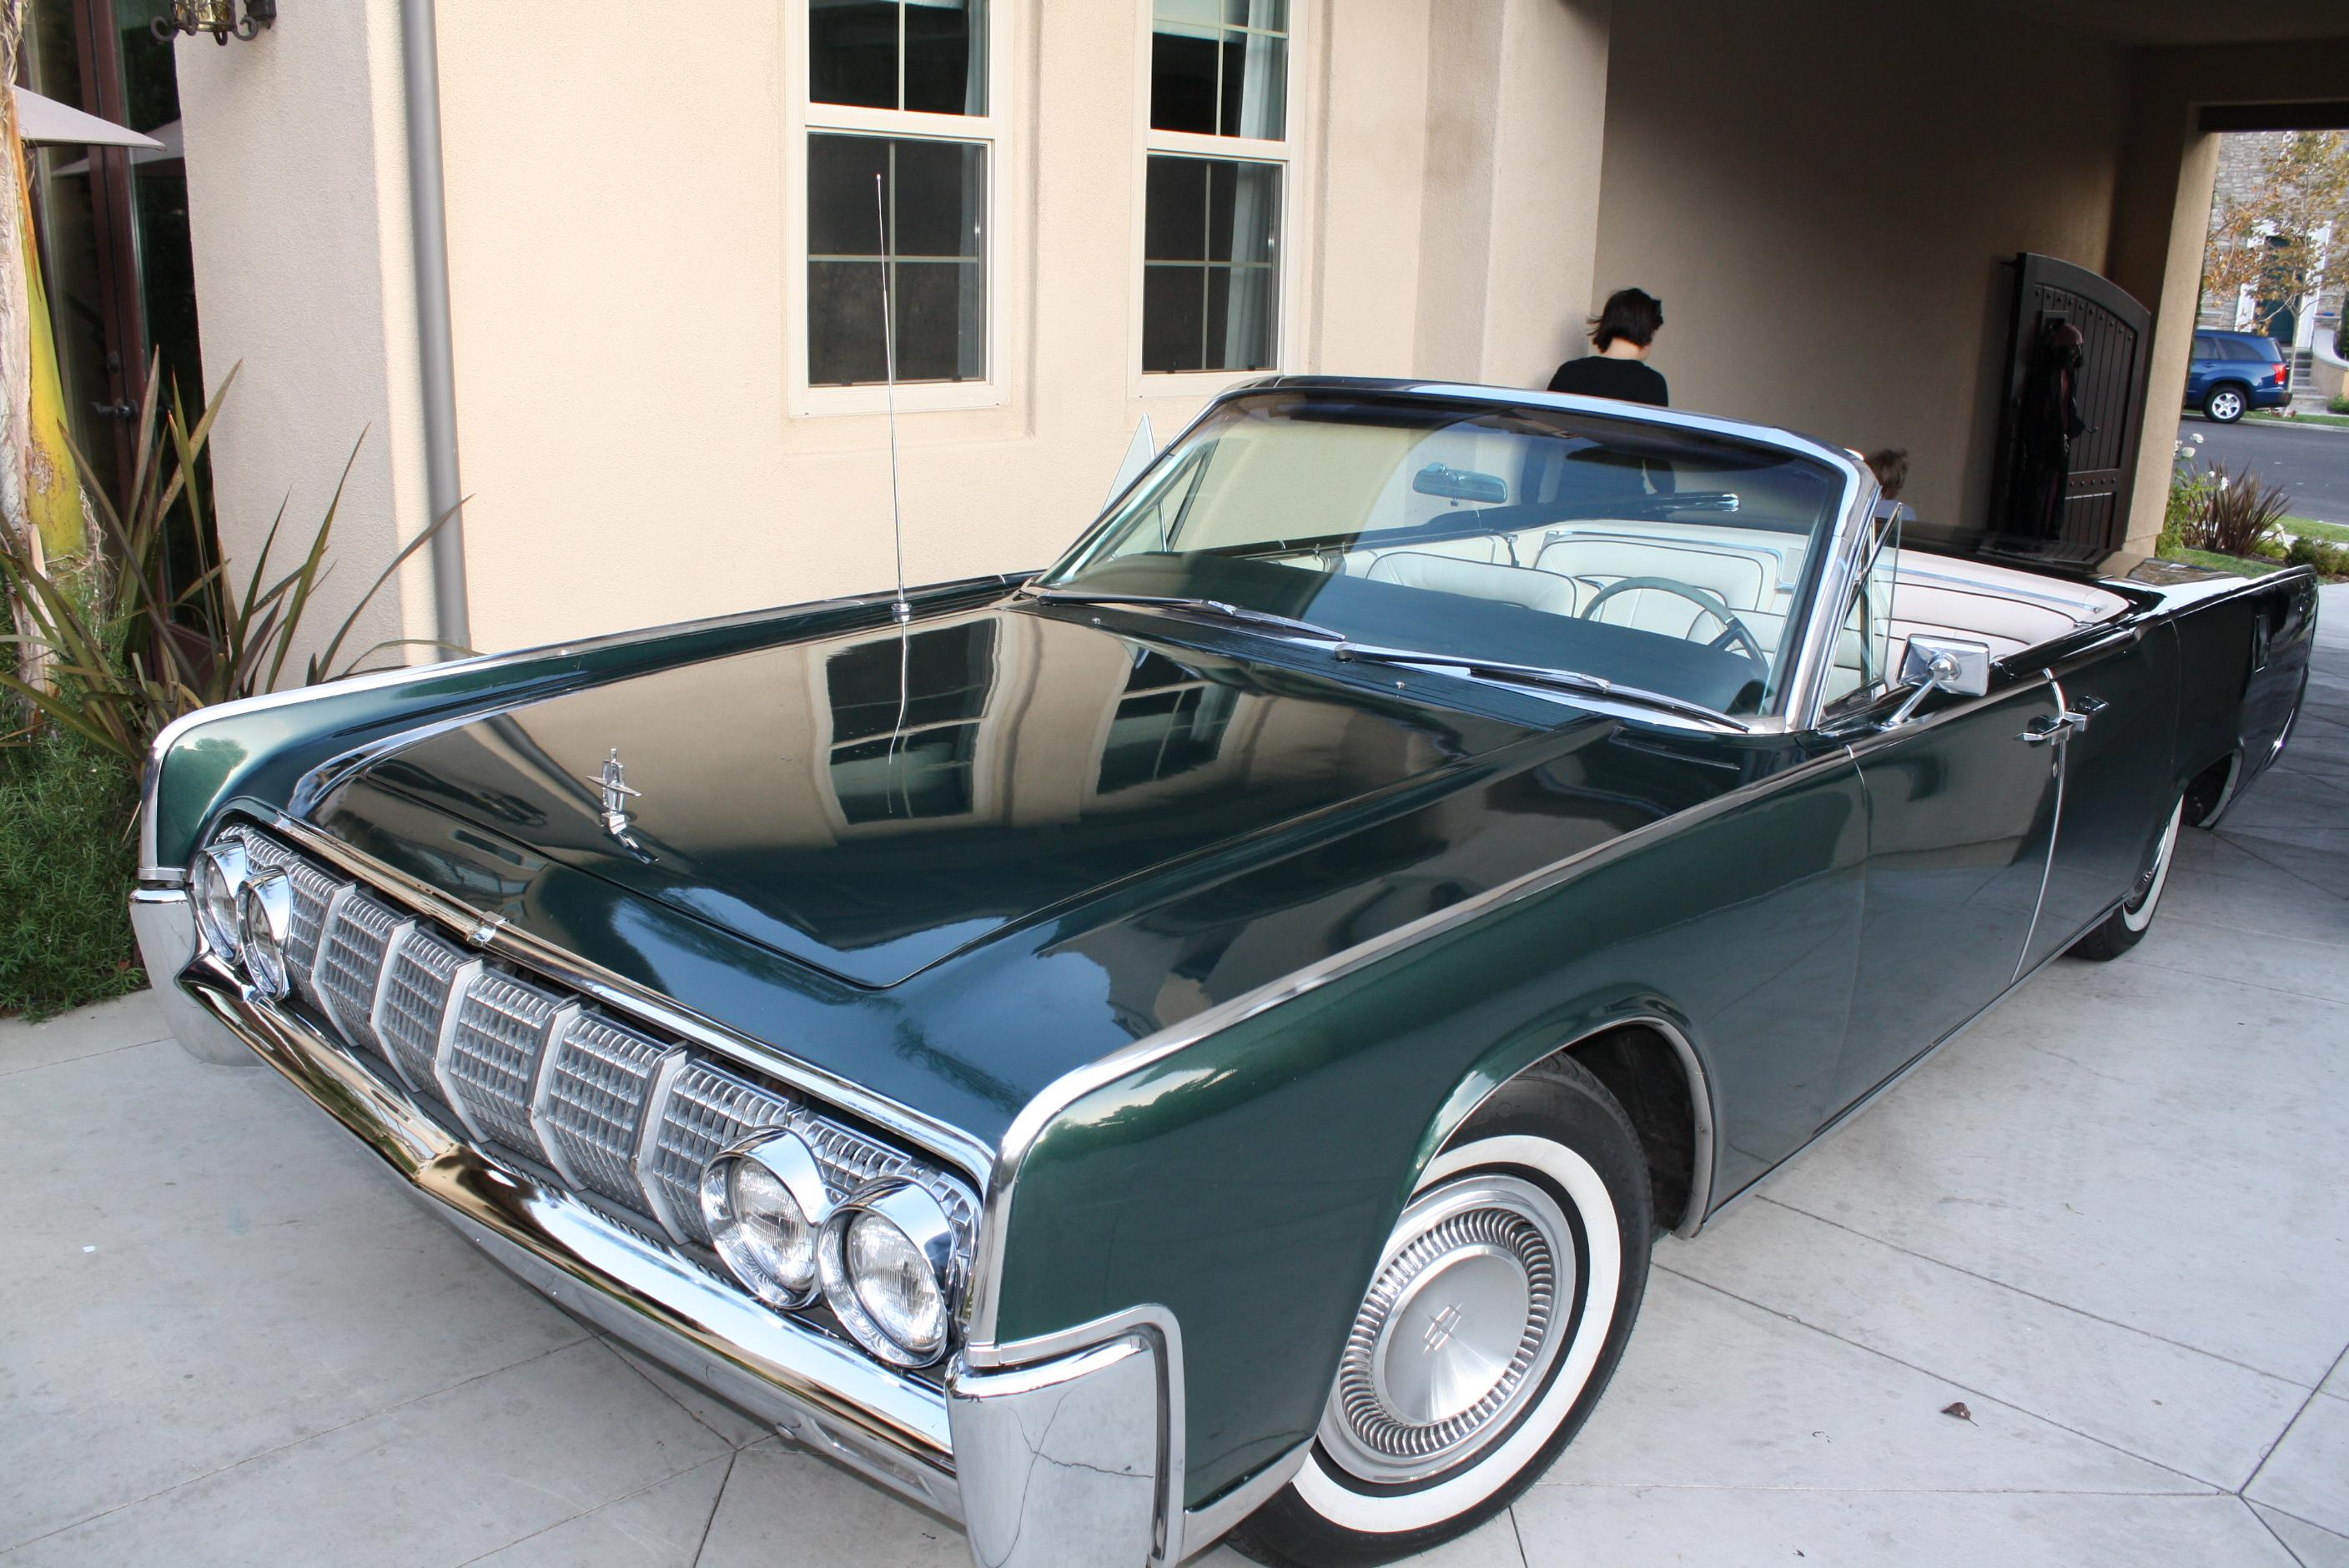 SixFo's 1964 Lincoln Continental